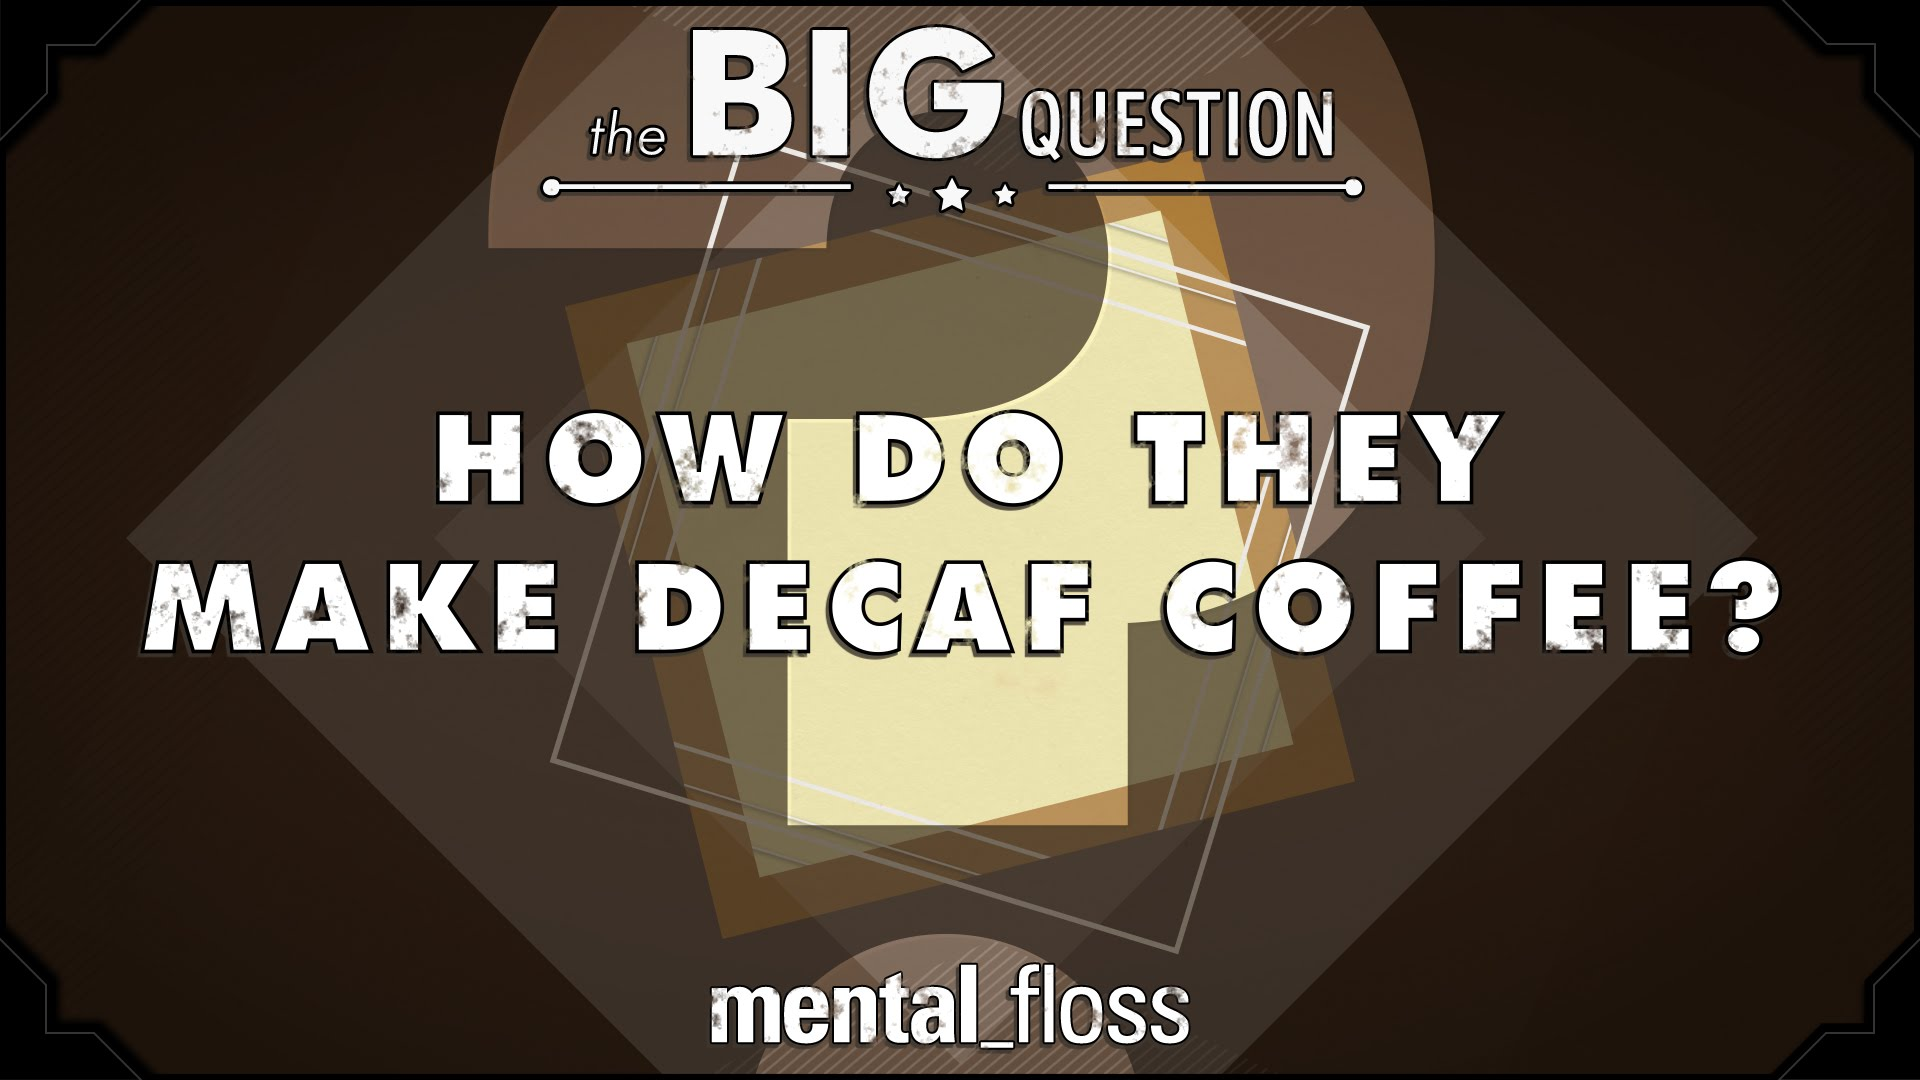 Mental Floss Explains How Regular Coffee Beans Are Decaffeinated In Their New Series 'The Big Question'